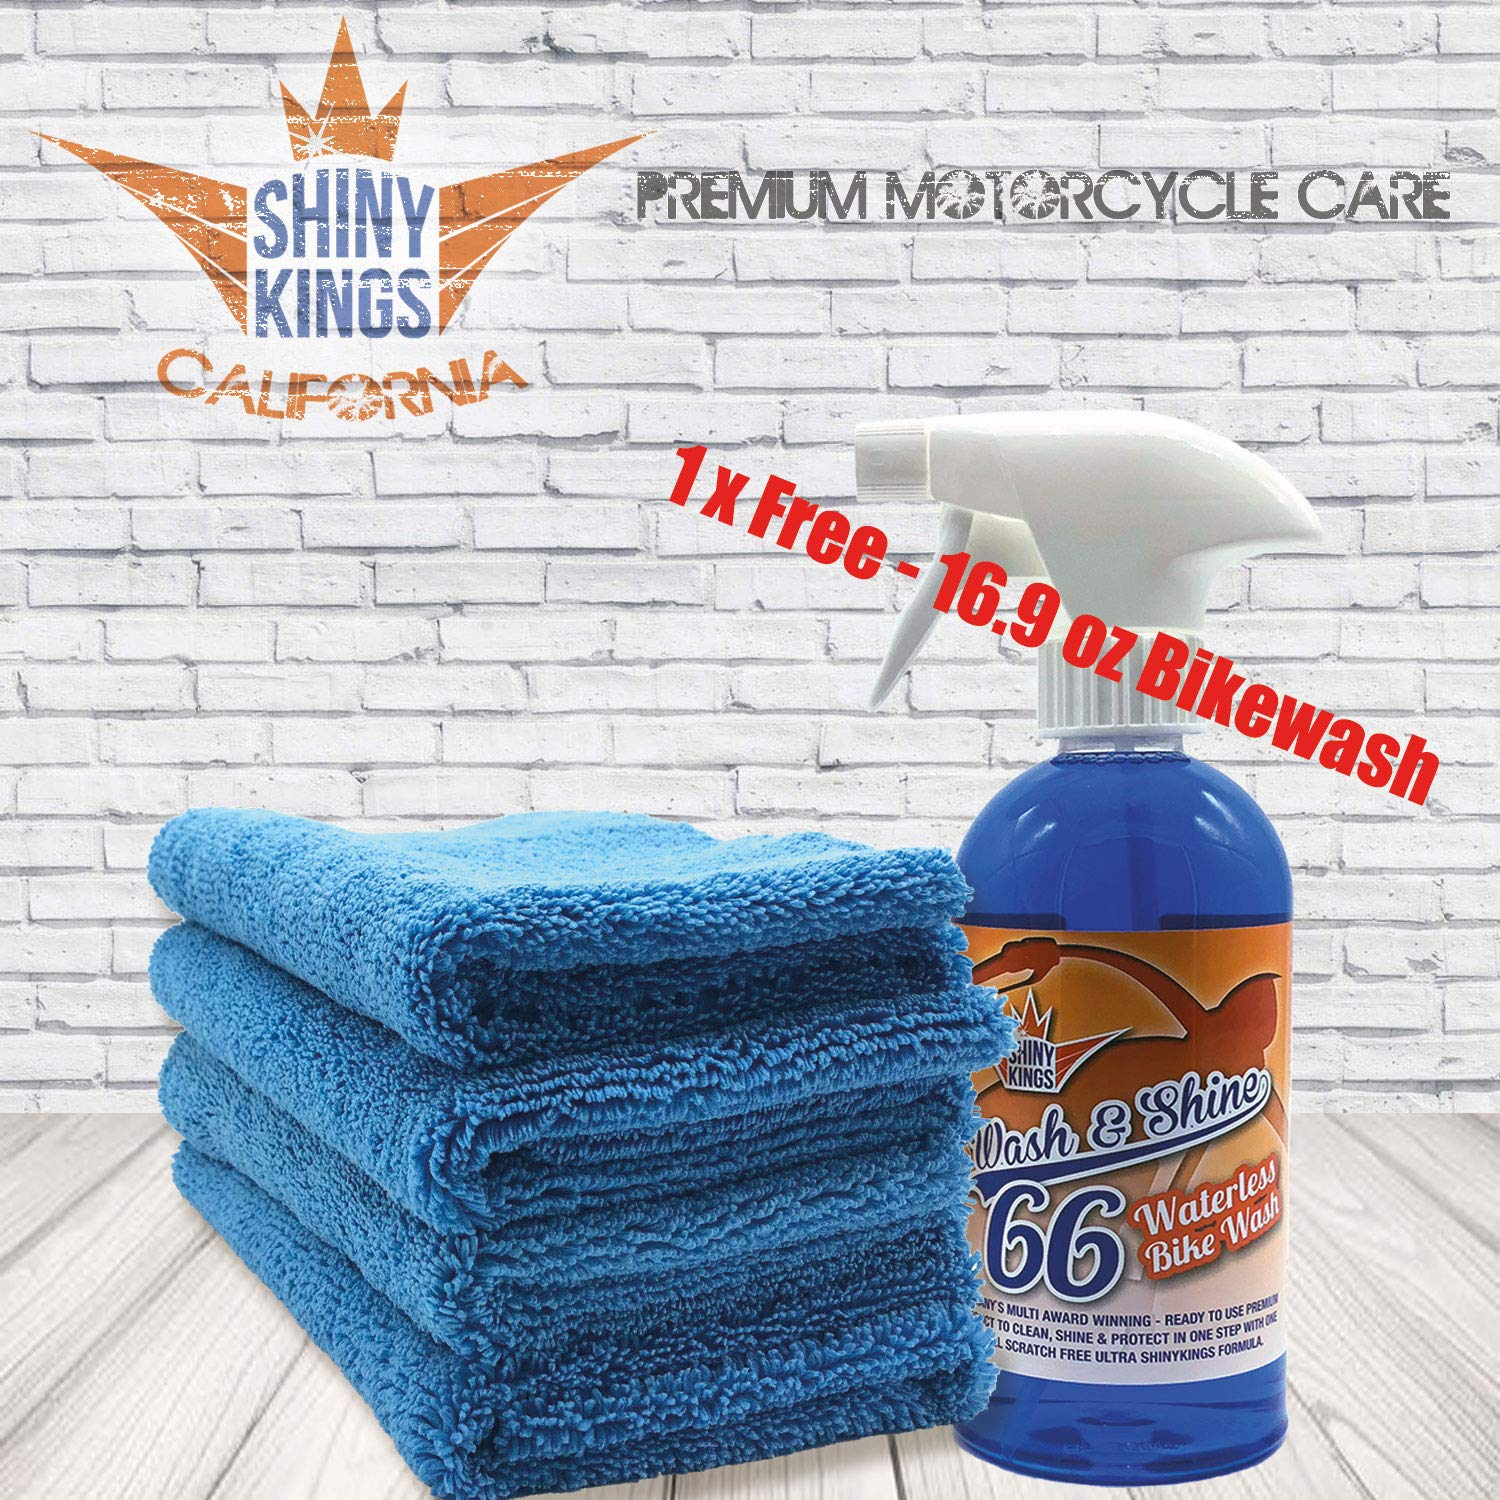 Shinykings 4 x Motorcycle wash Cleaning Towel 16x16 in Plus 1 Free 16.9 oz waterless Bike wash | Extra Soft and Gentle Towel Motorcycle wash | usable on All Surfaces of Motorcycle